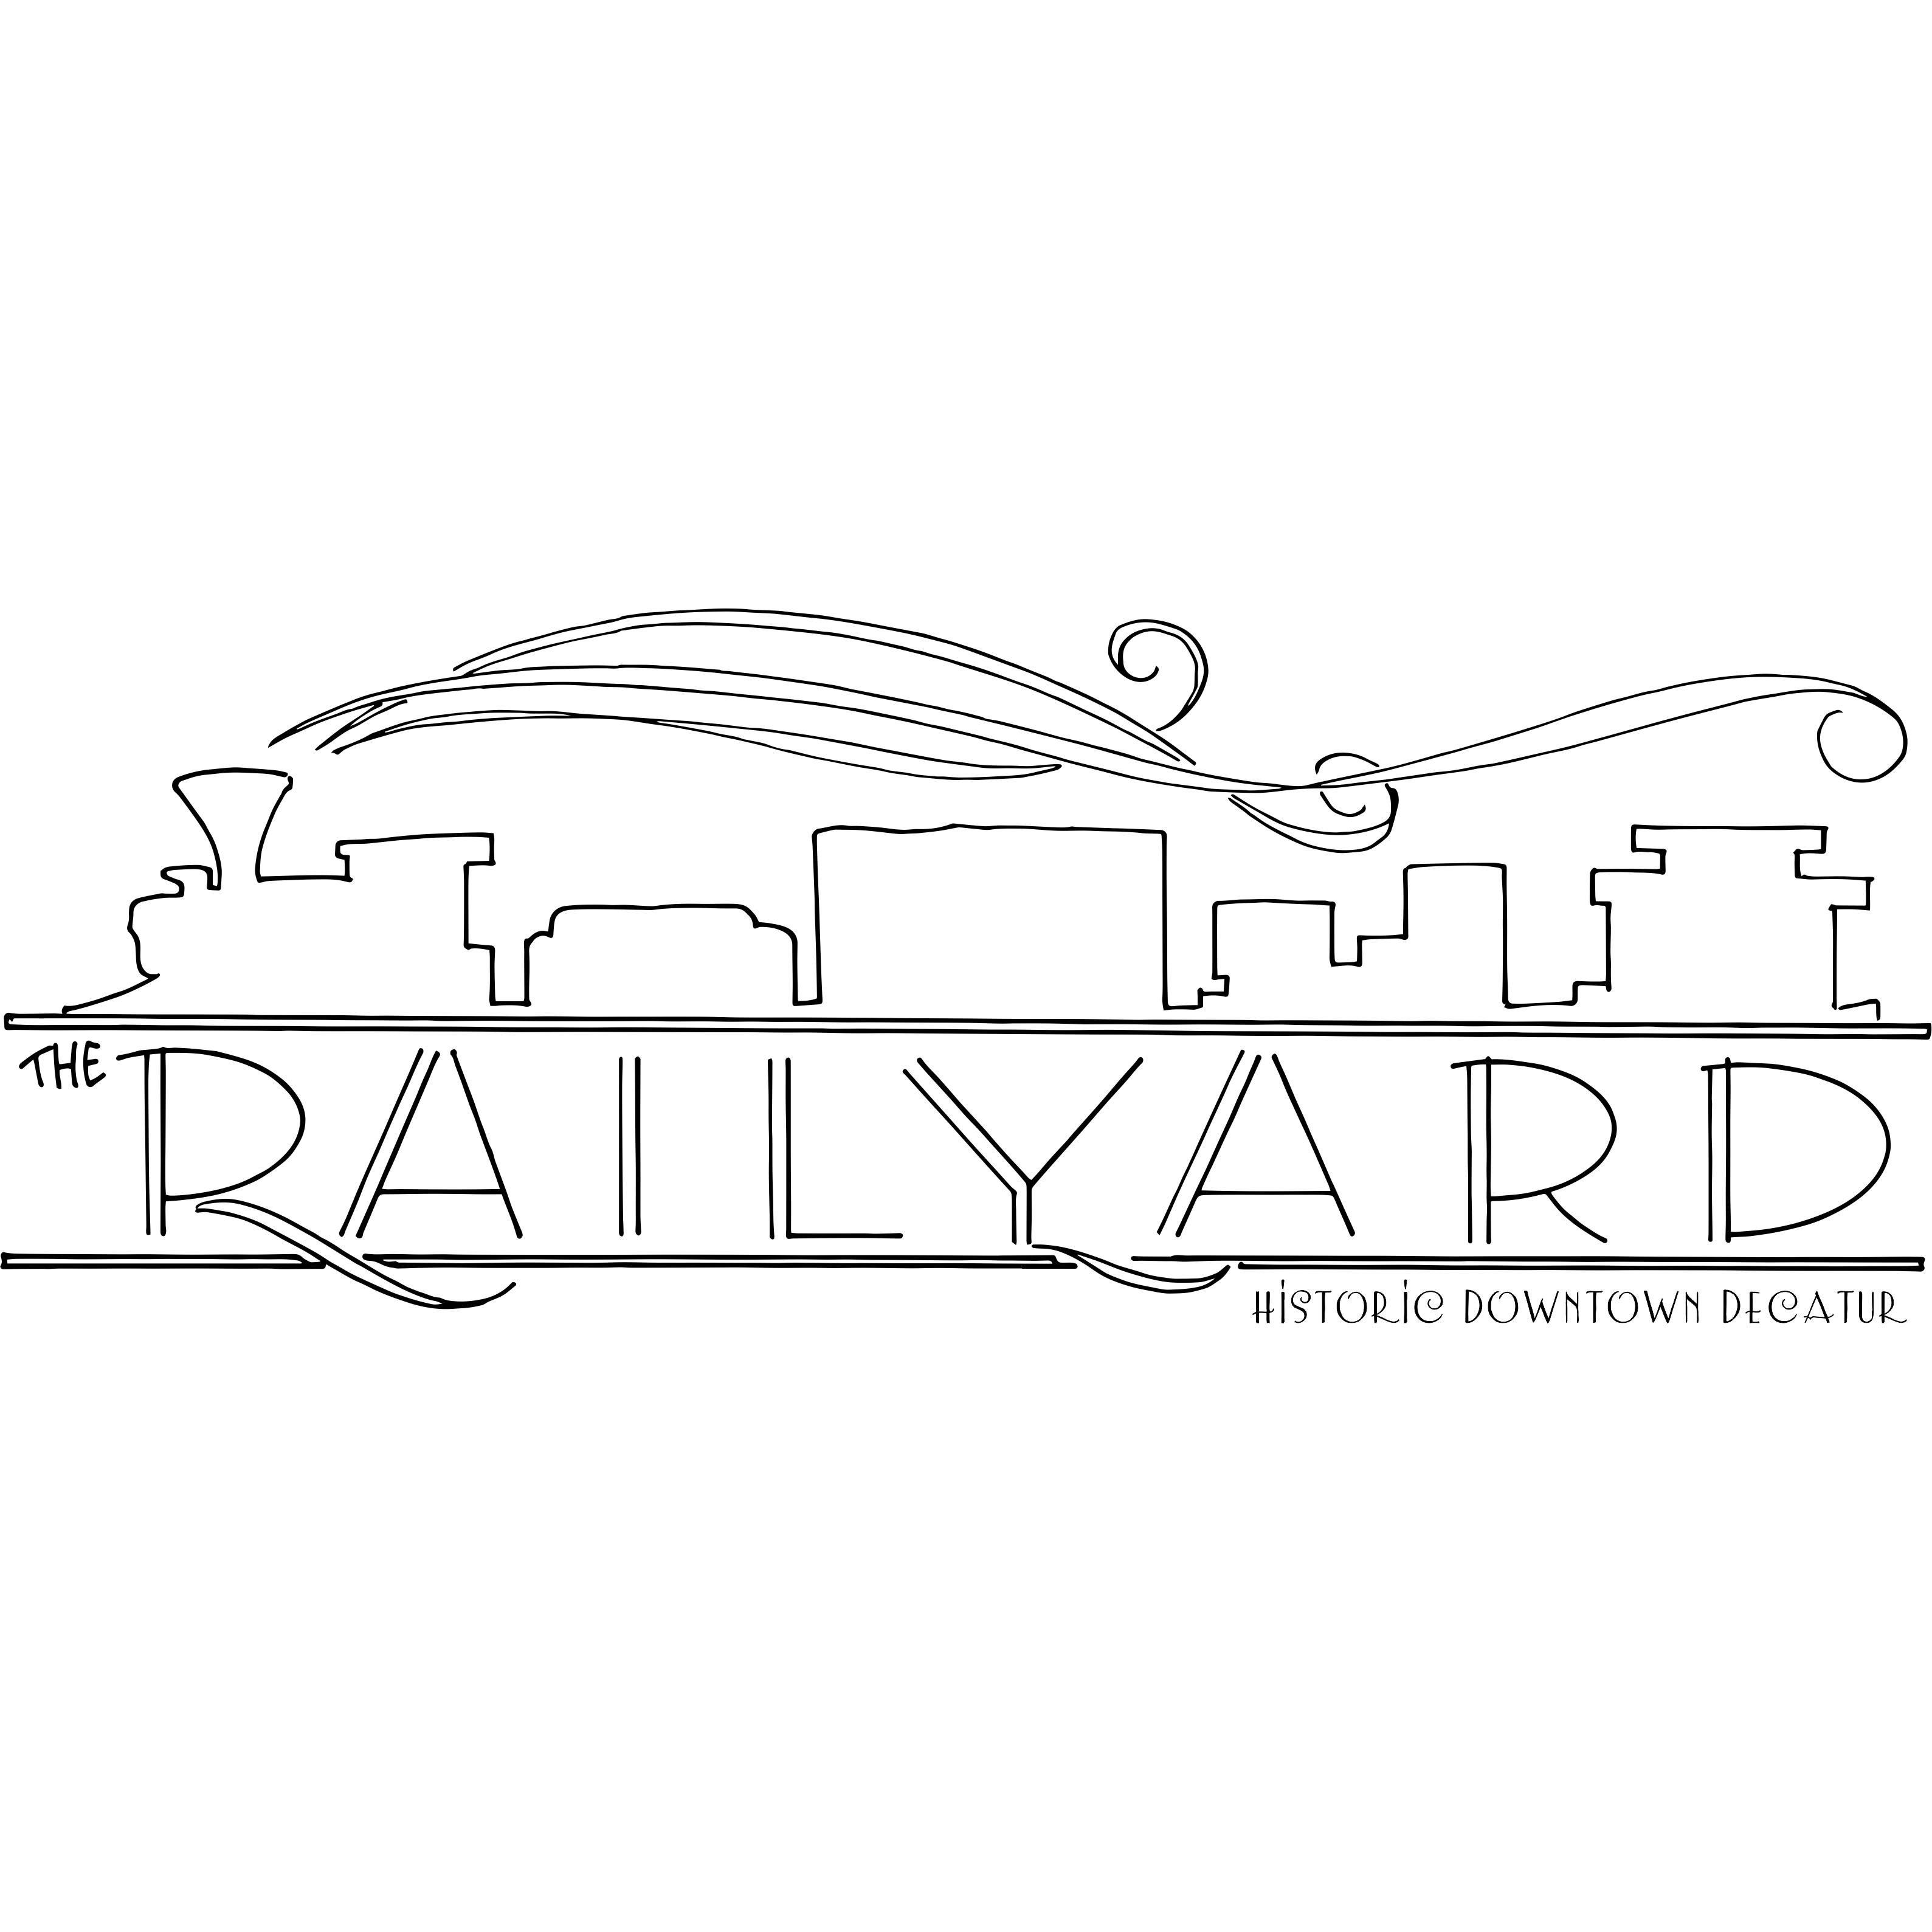 The RailYard